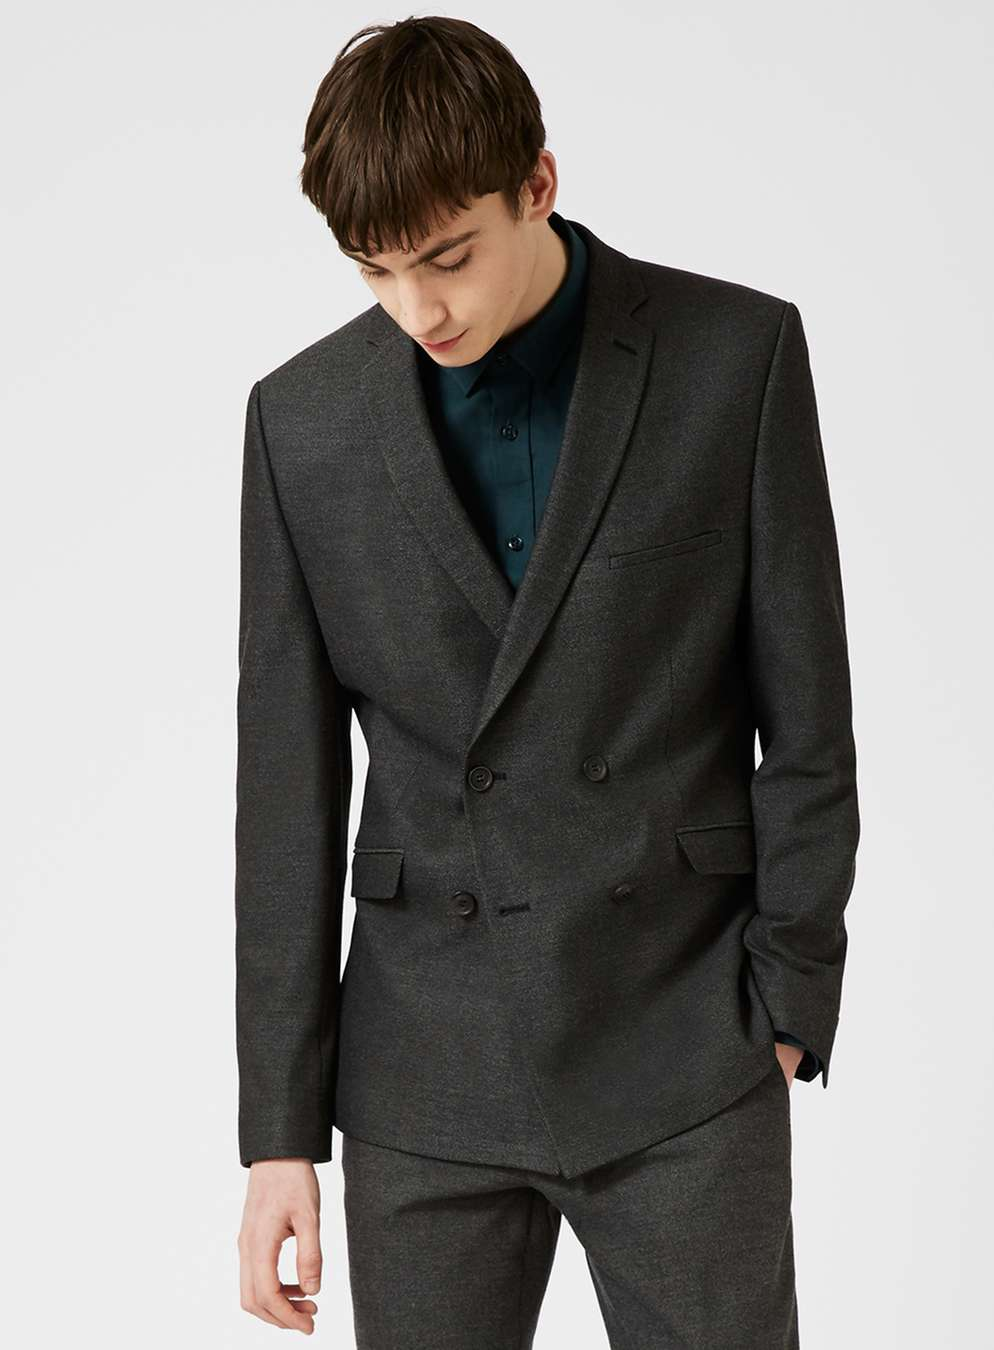 SELECTED HOMME Grey Textured Double Breasted Suit Jacket at Topman